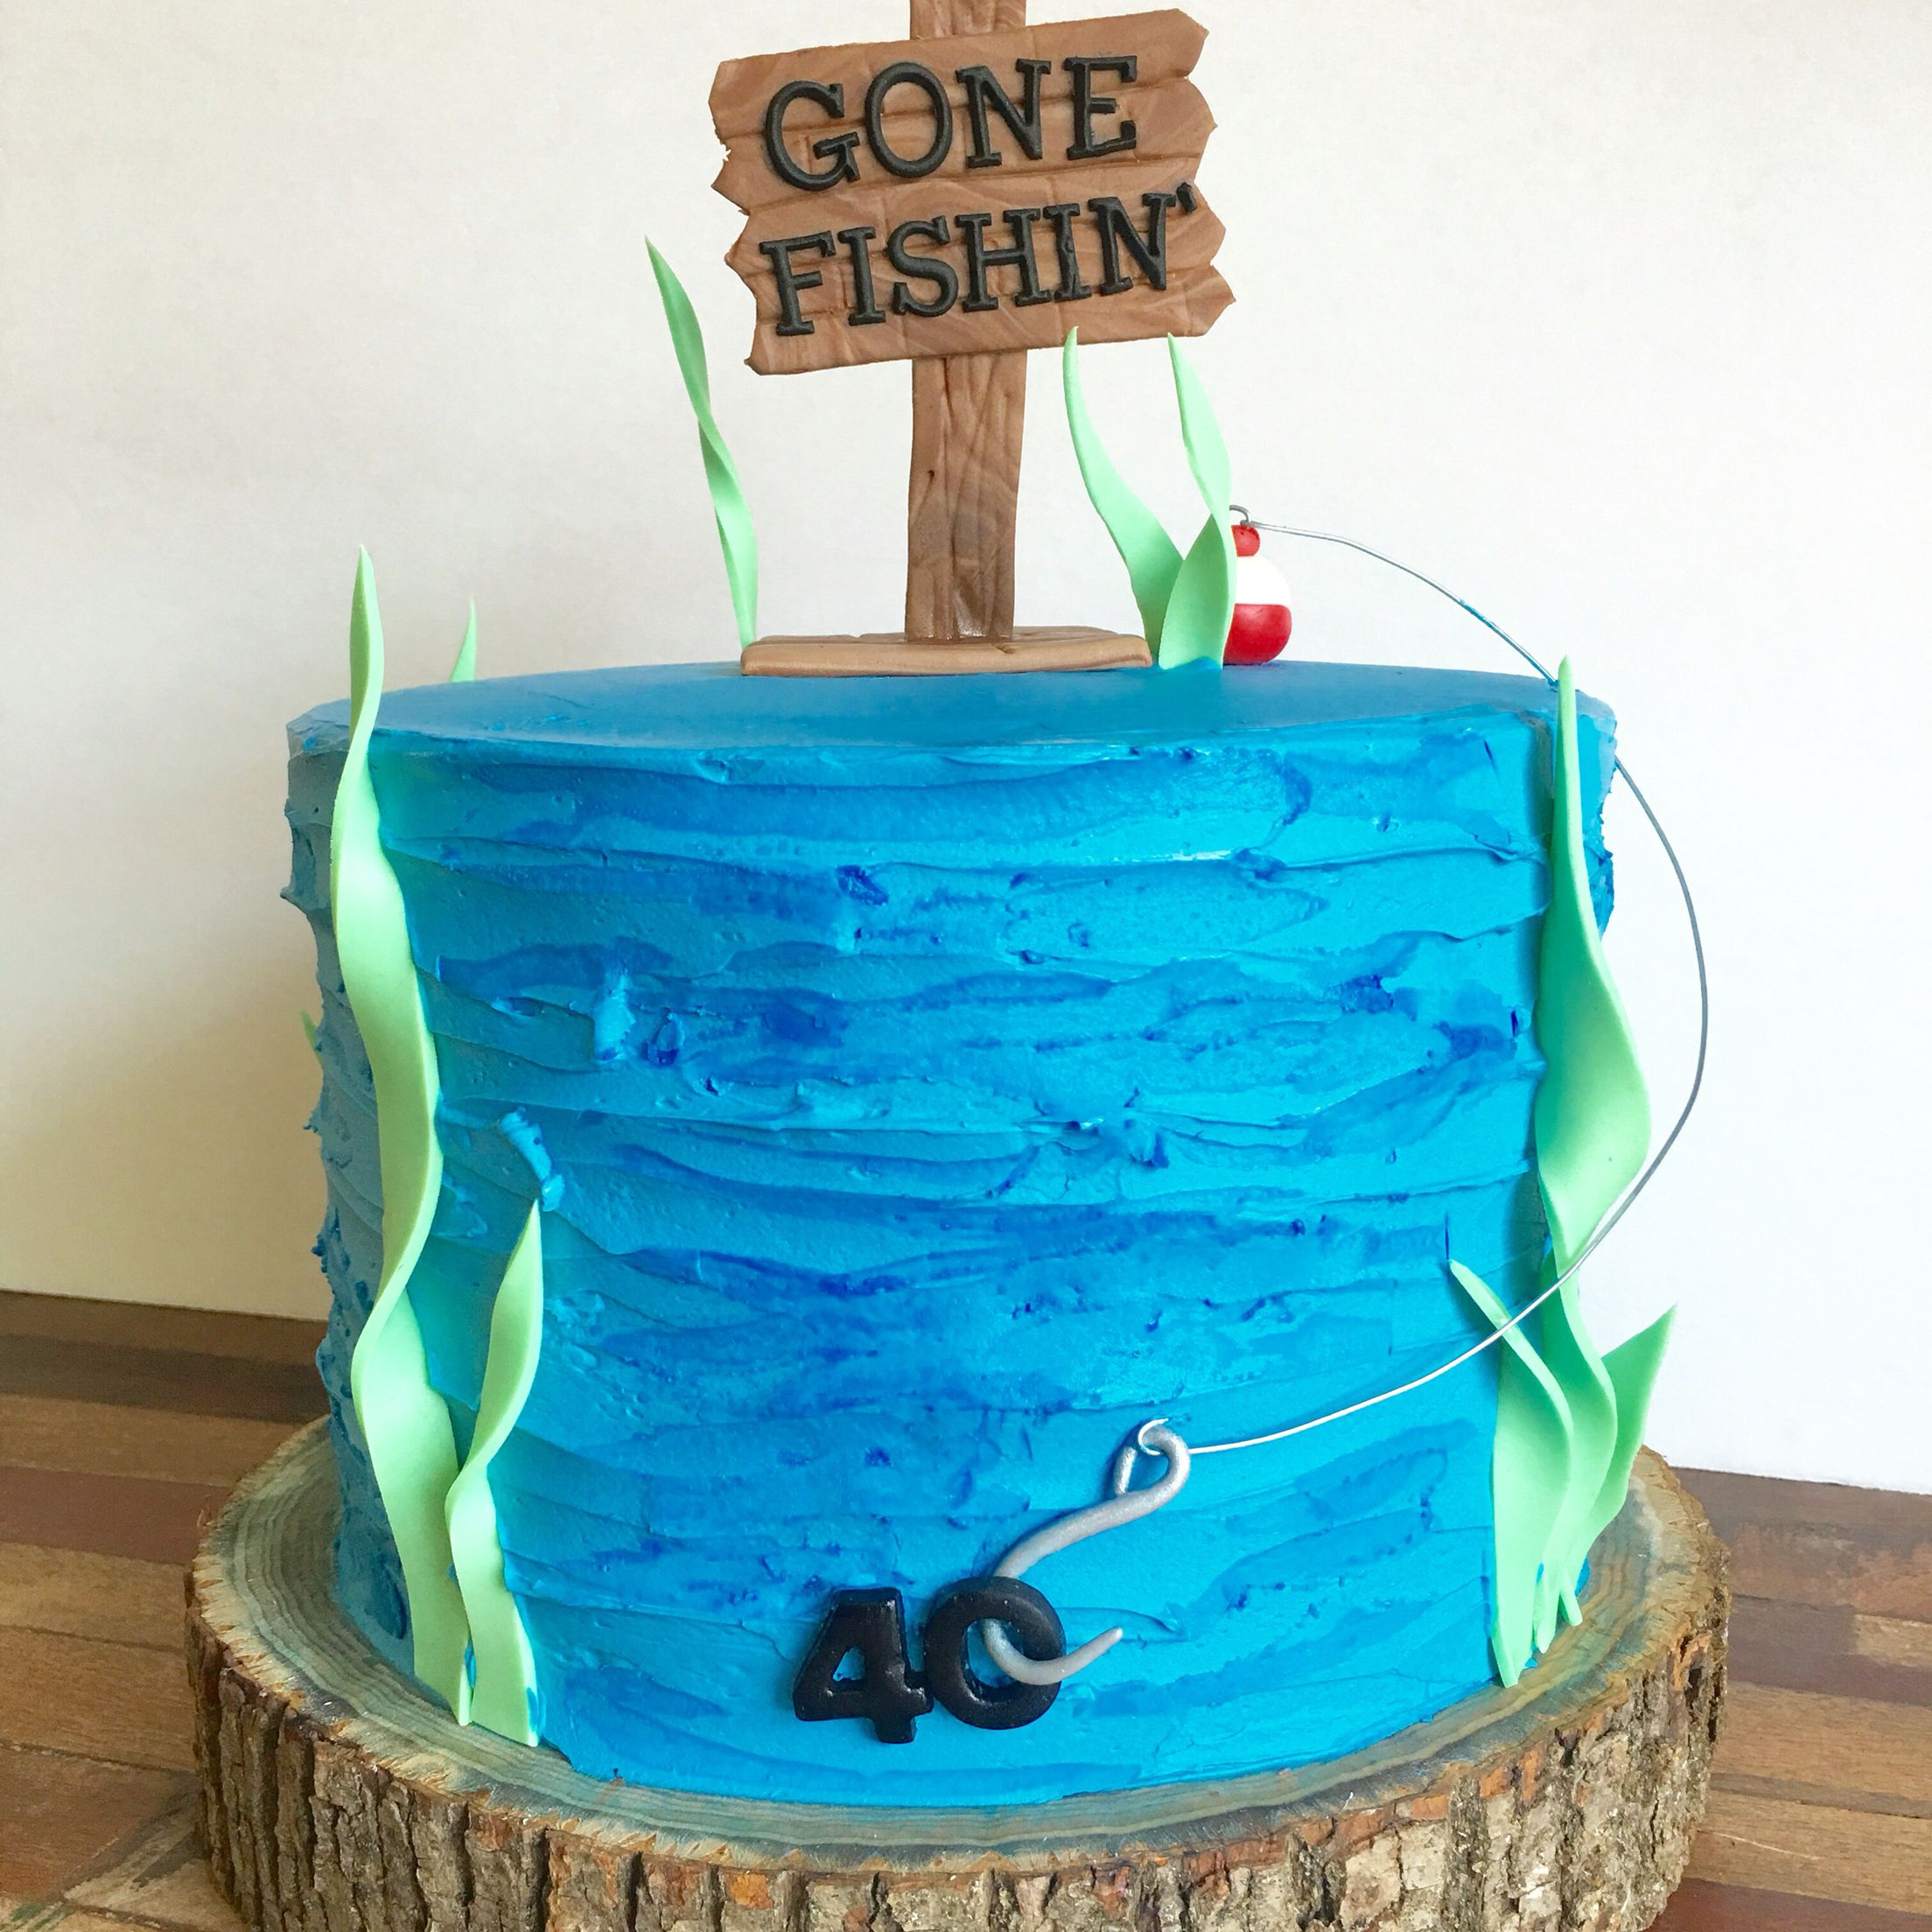 Gone fishing cake 40th birthday cake 777 awesome happy for Fishing cake ideas